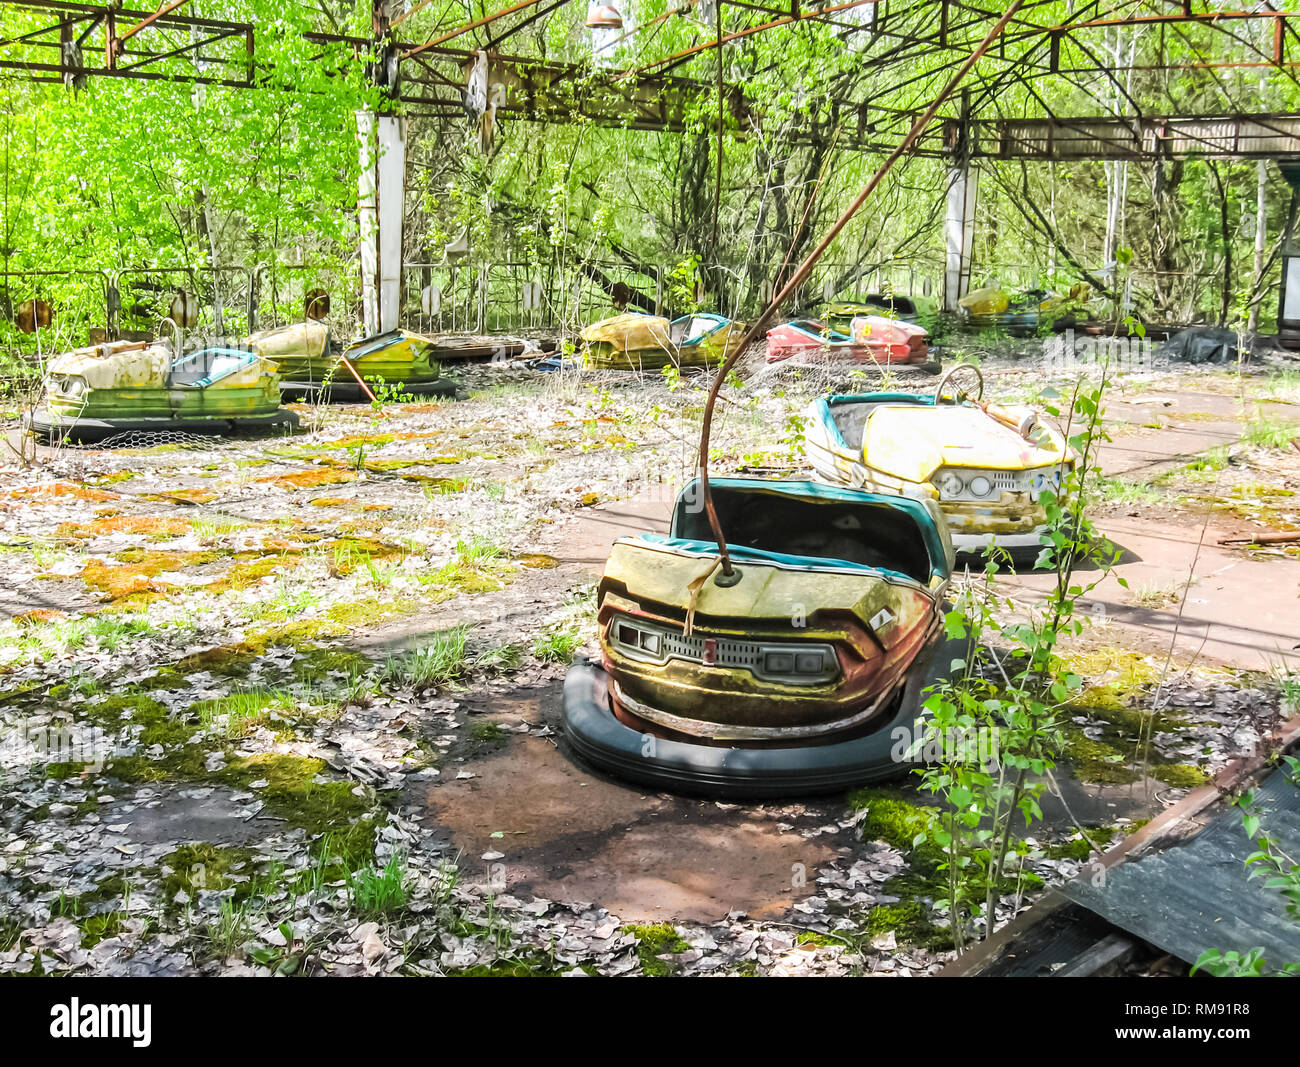 Pripyat An Abandoned Playground With Cars Pripyat An Abandoned Playground With Cars Stock Photo Alamy